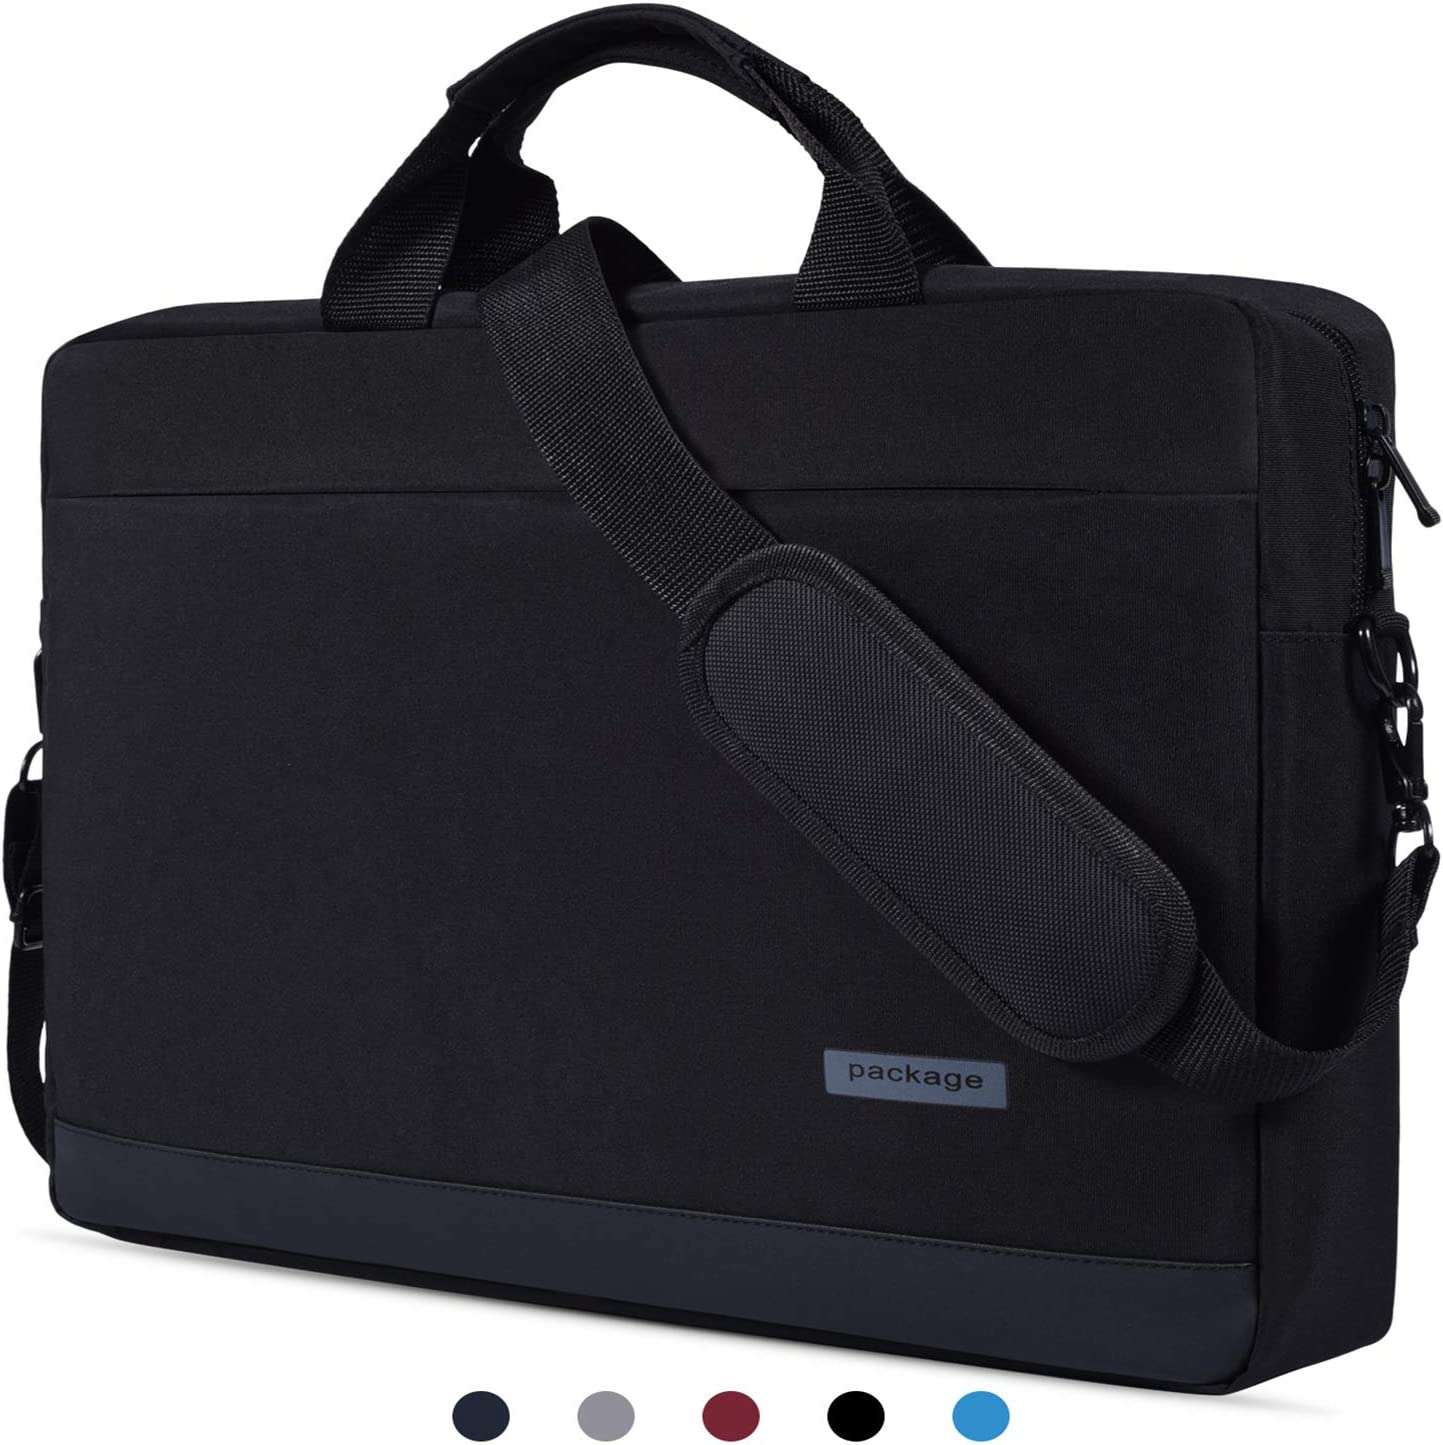 "15.6 inch Laptop Briefcase Messenger Bag Waterproof Laptop Shoulder Bag Compatible with Acer Aspire E 15/Acer Predator Helios 300/Acer Chromebook 15, ASUS Toshiba LG MSI HP 15.6"" Notebook Bag, Black-2"